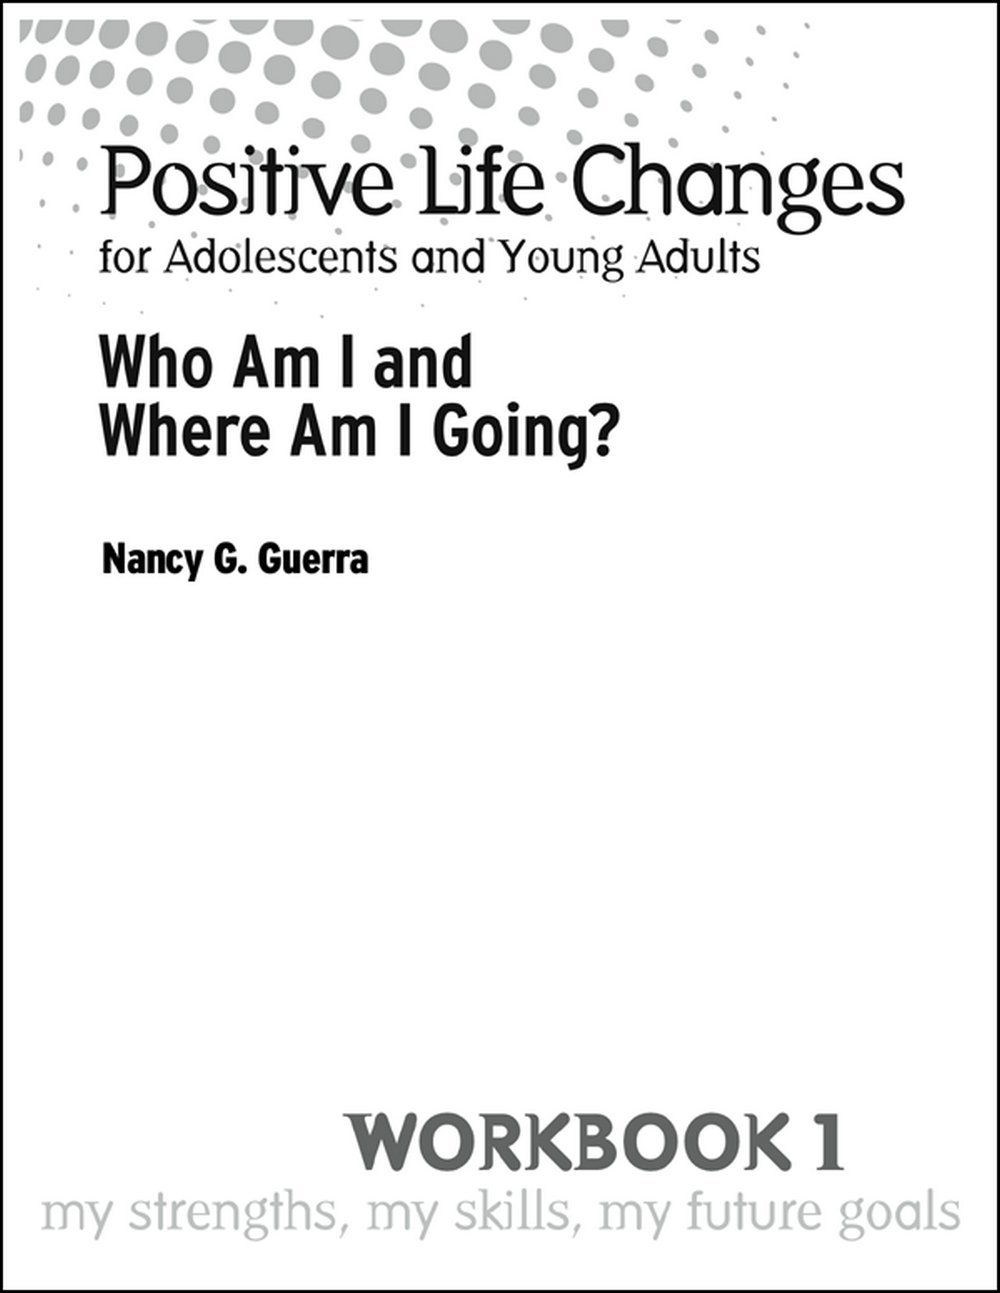 Positive Life Changes: Who Am I and Where Am I Going, Workbook 1 (Set of 5) ebook